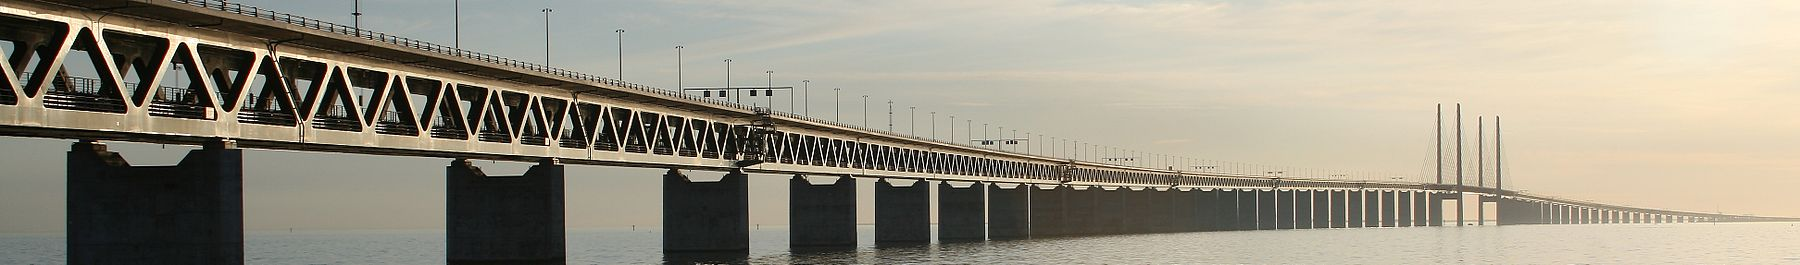 Oresund Bridge narrow banner.JPG